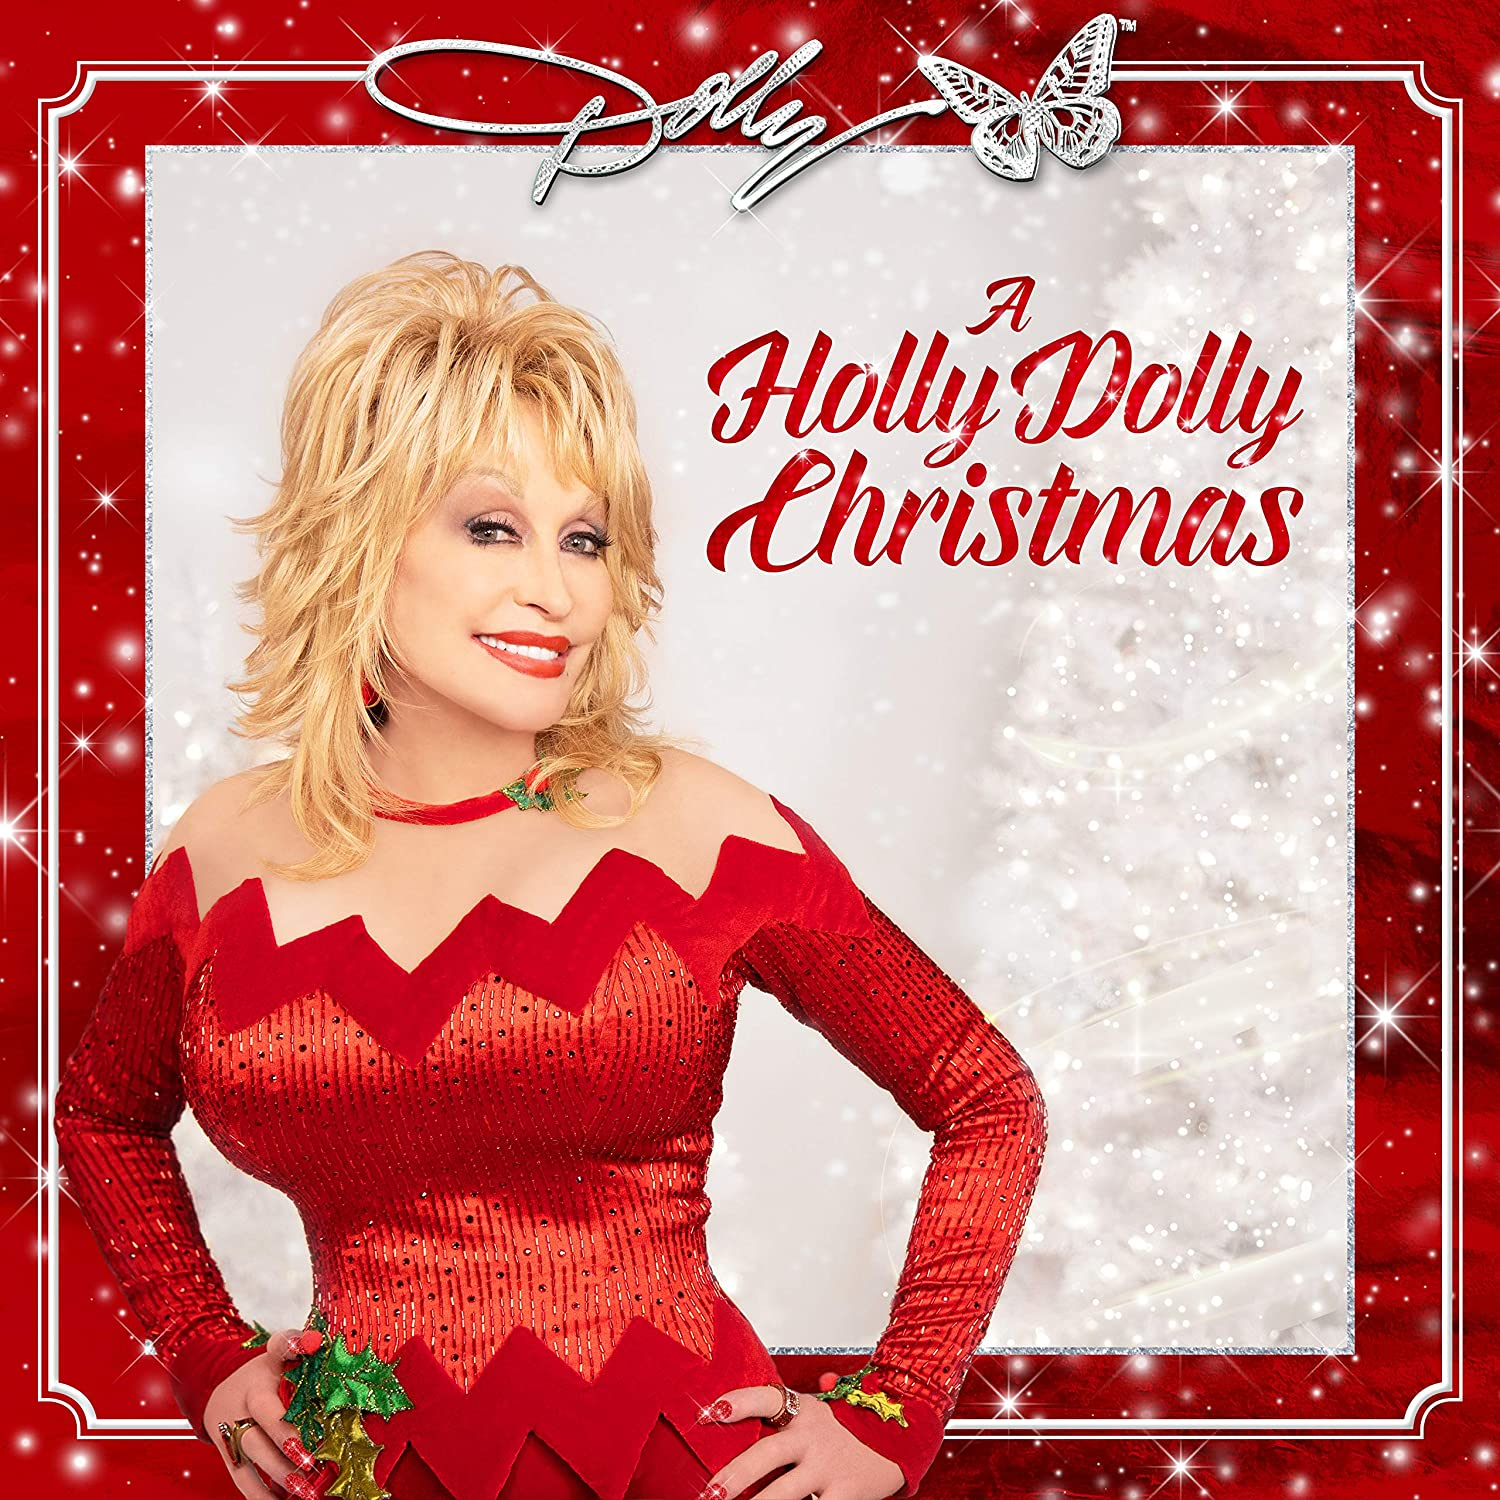 Dolly Christmas Parade 2020 Dolly Christmas' can help you forget 2020